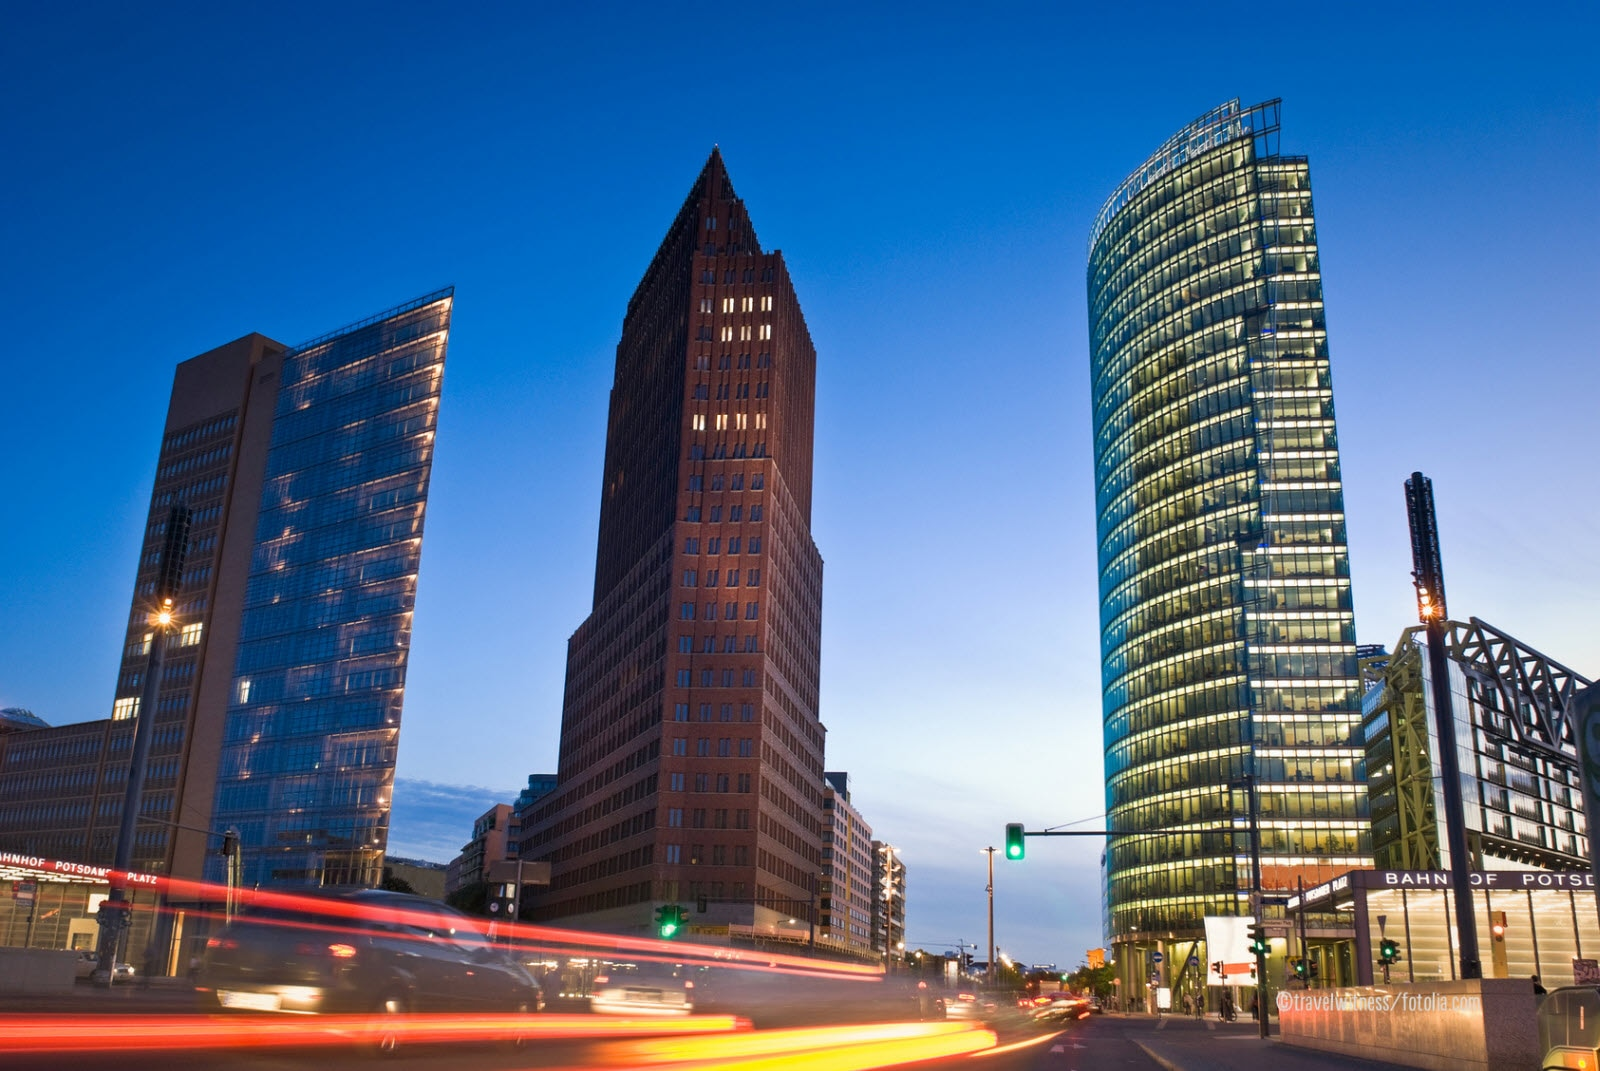 Skyscrapers of the Potsdamer Platz